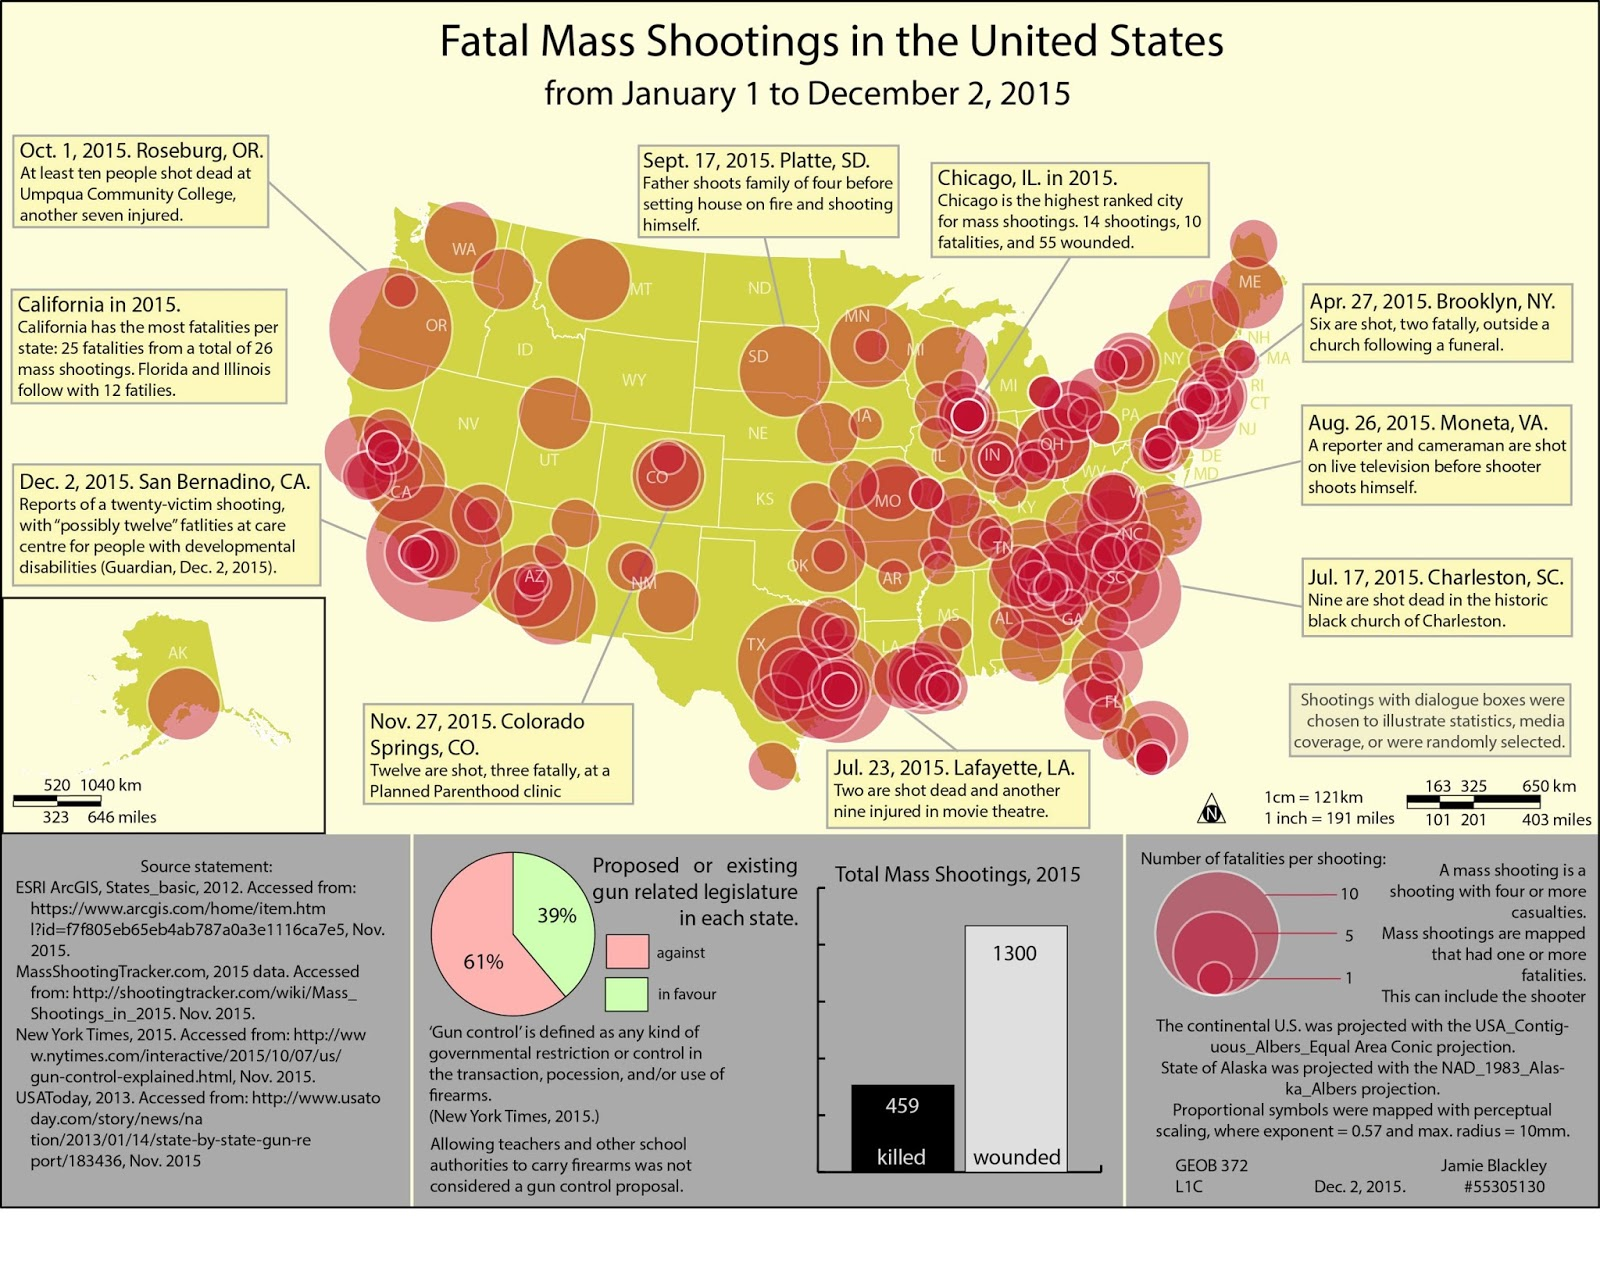 Fatal mass shooting in the U.S. from January 1 to December 2, 2015